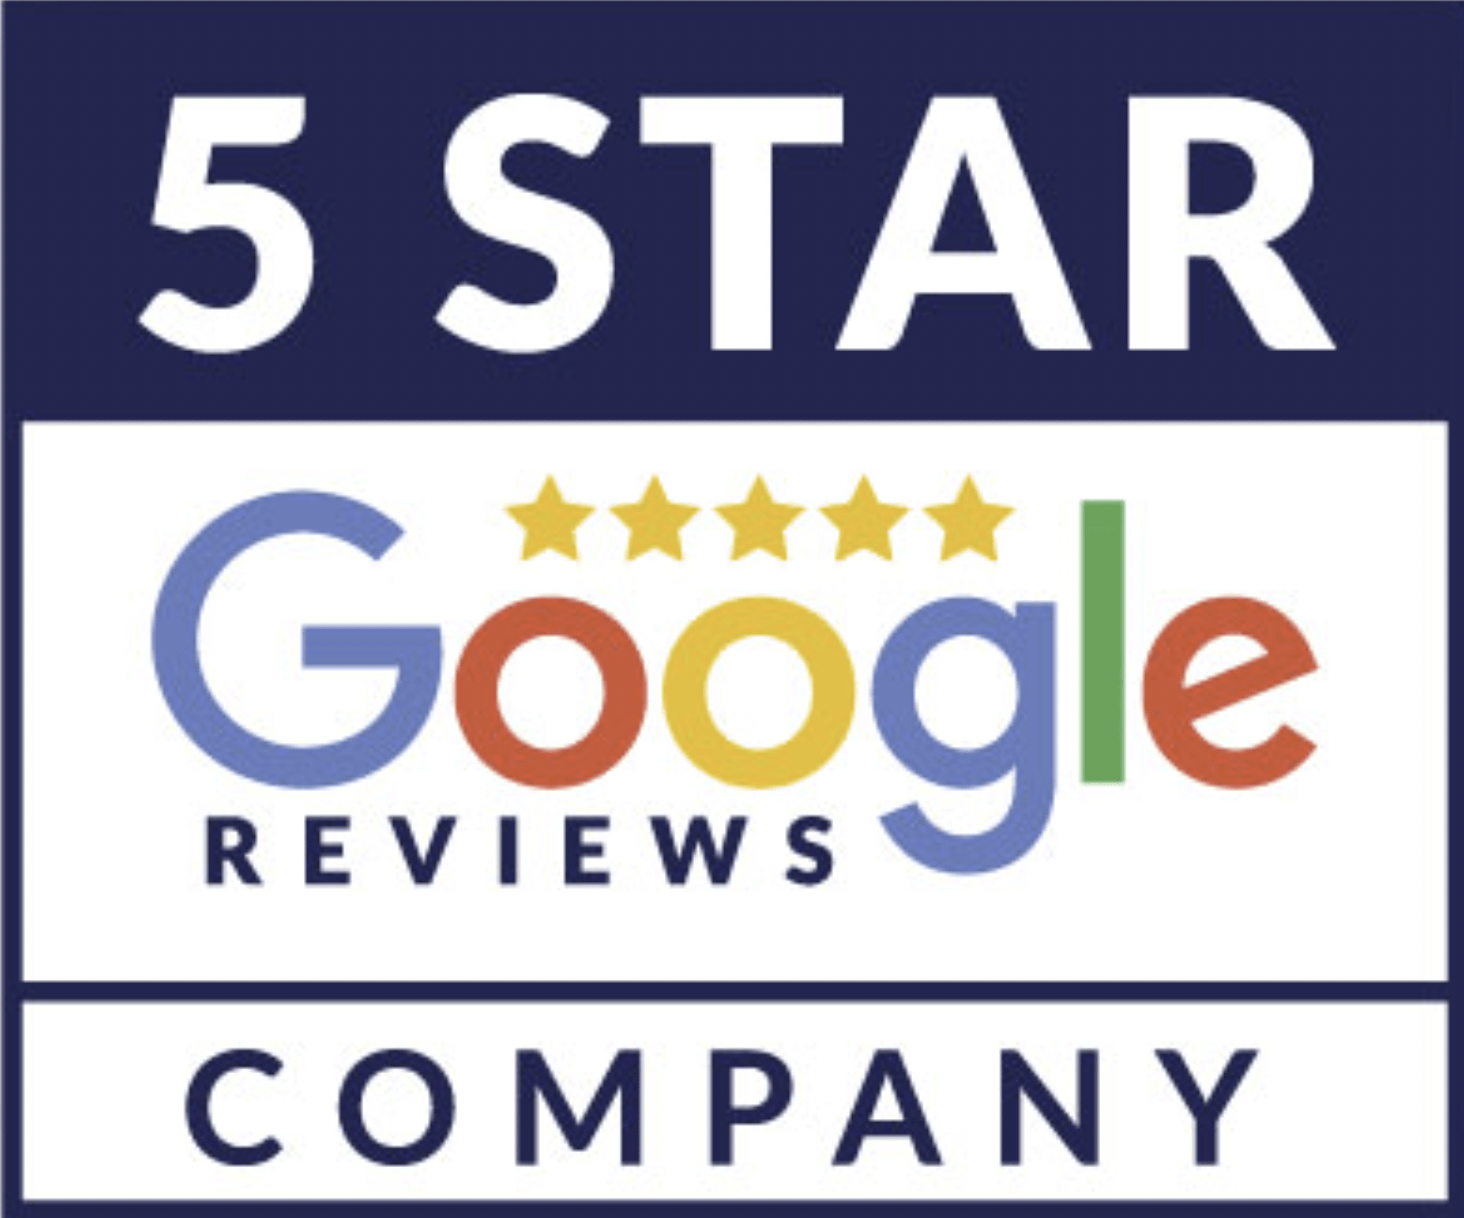 Check out our 5-star Google Reviews